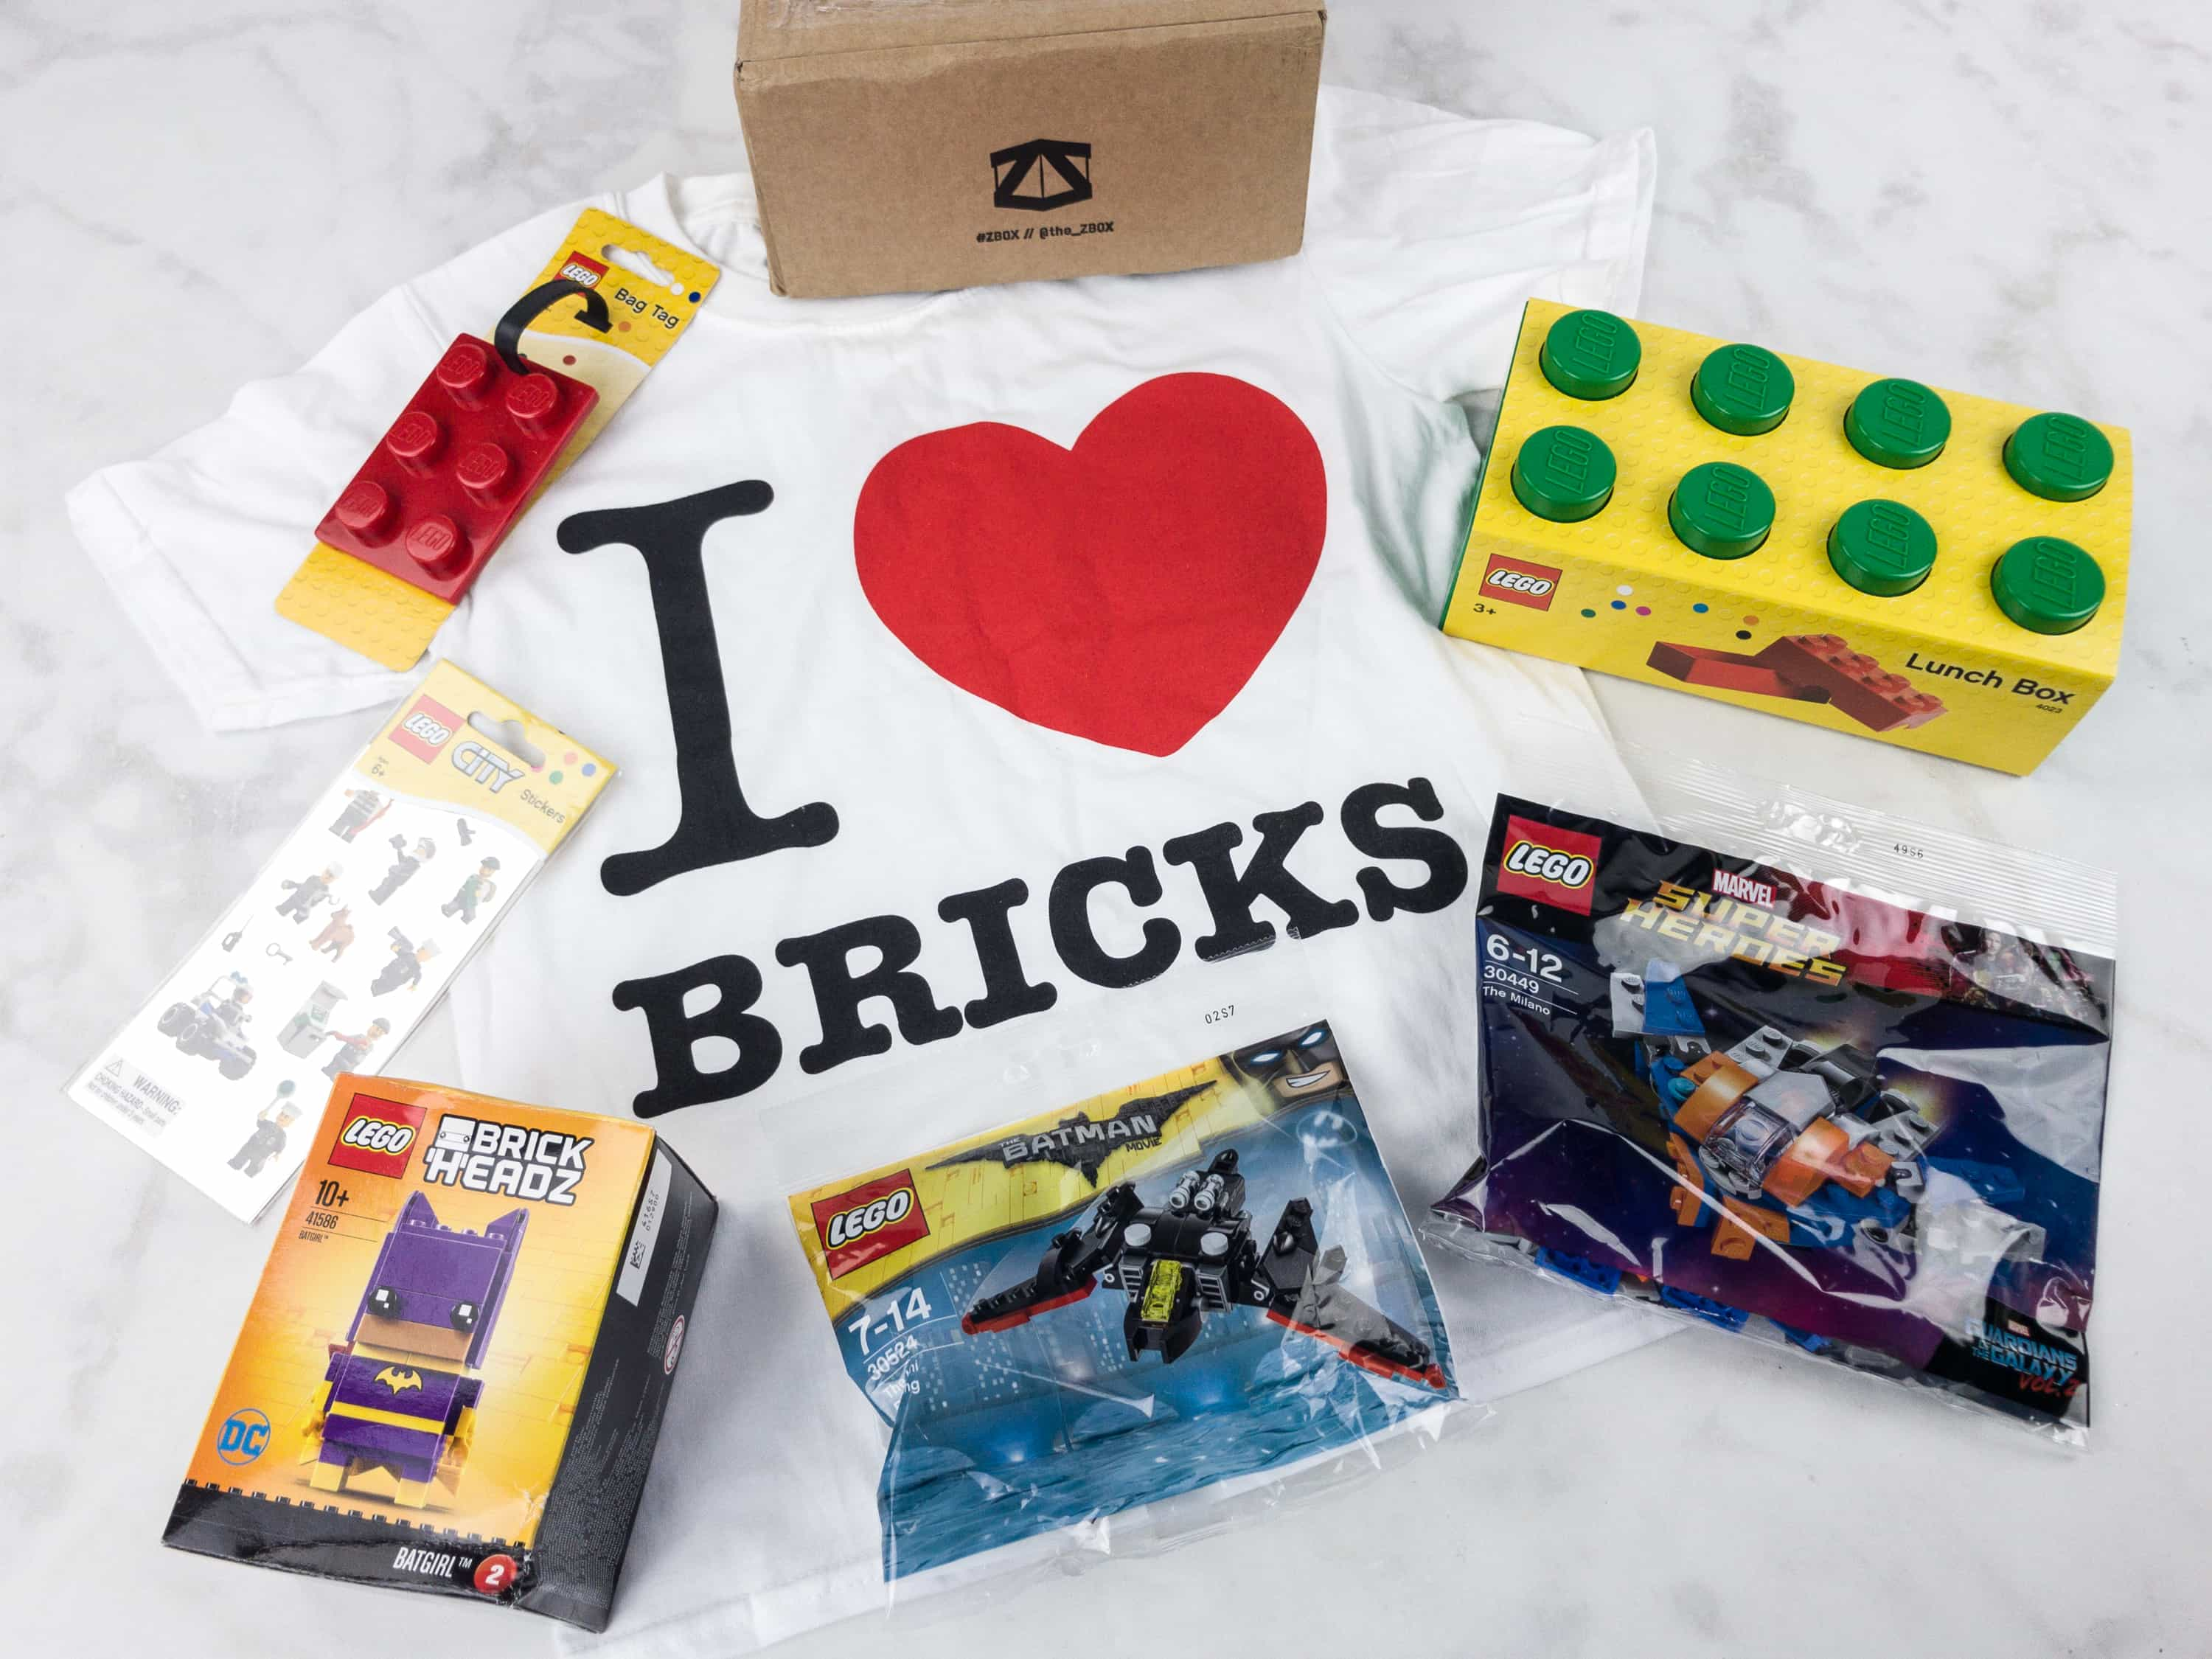 ZBOX Limited Edition LEGO Box Review